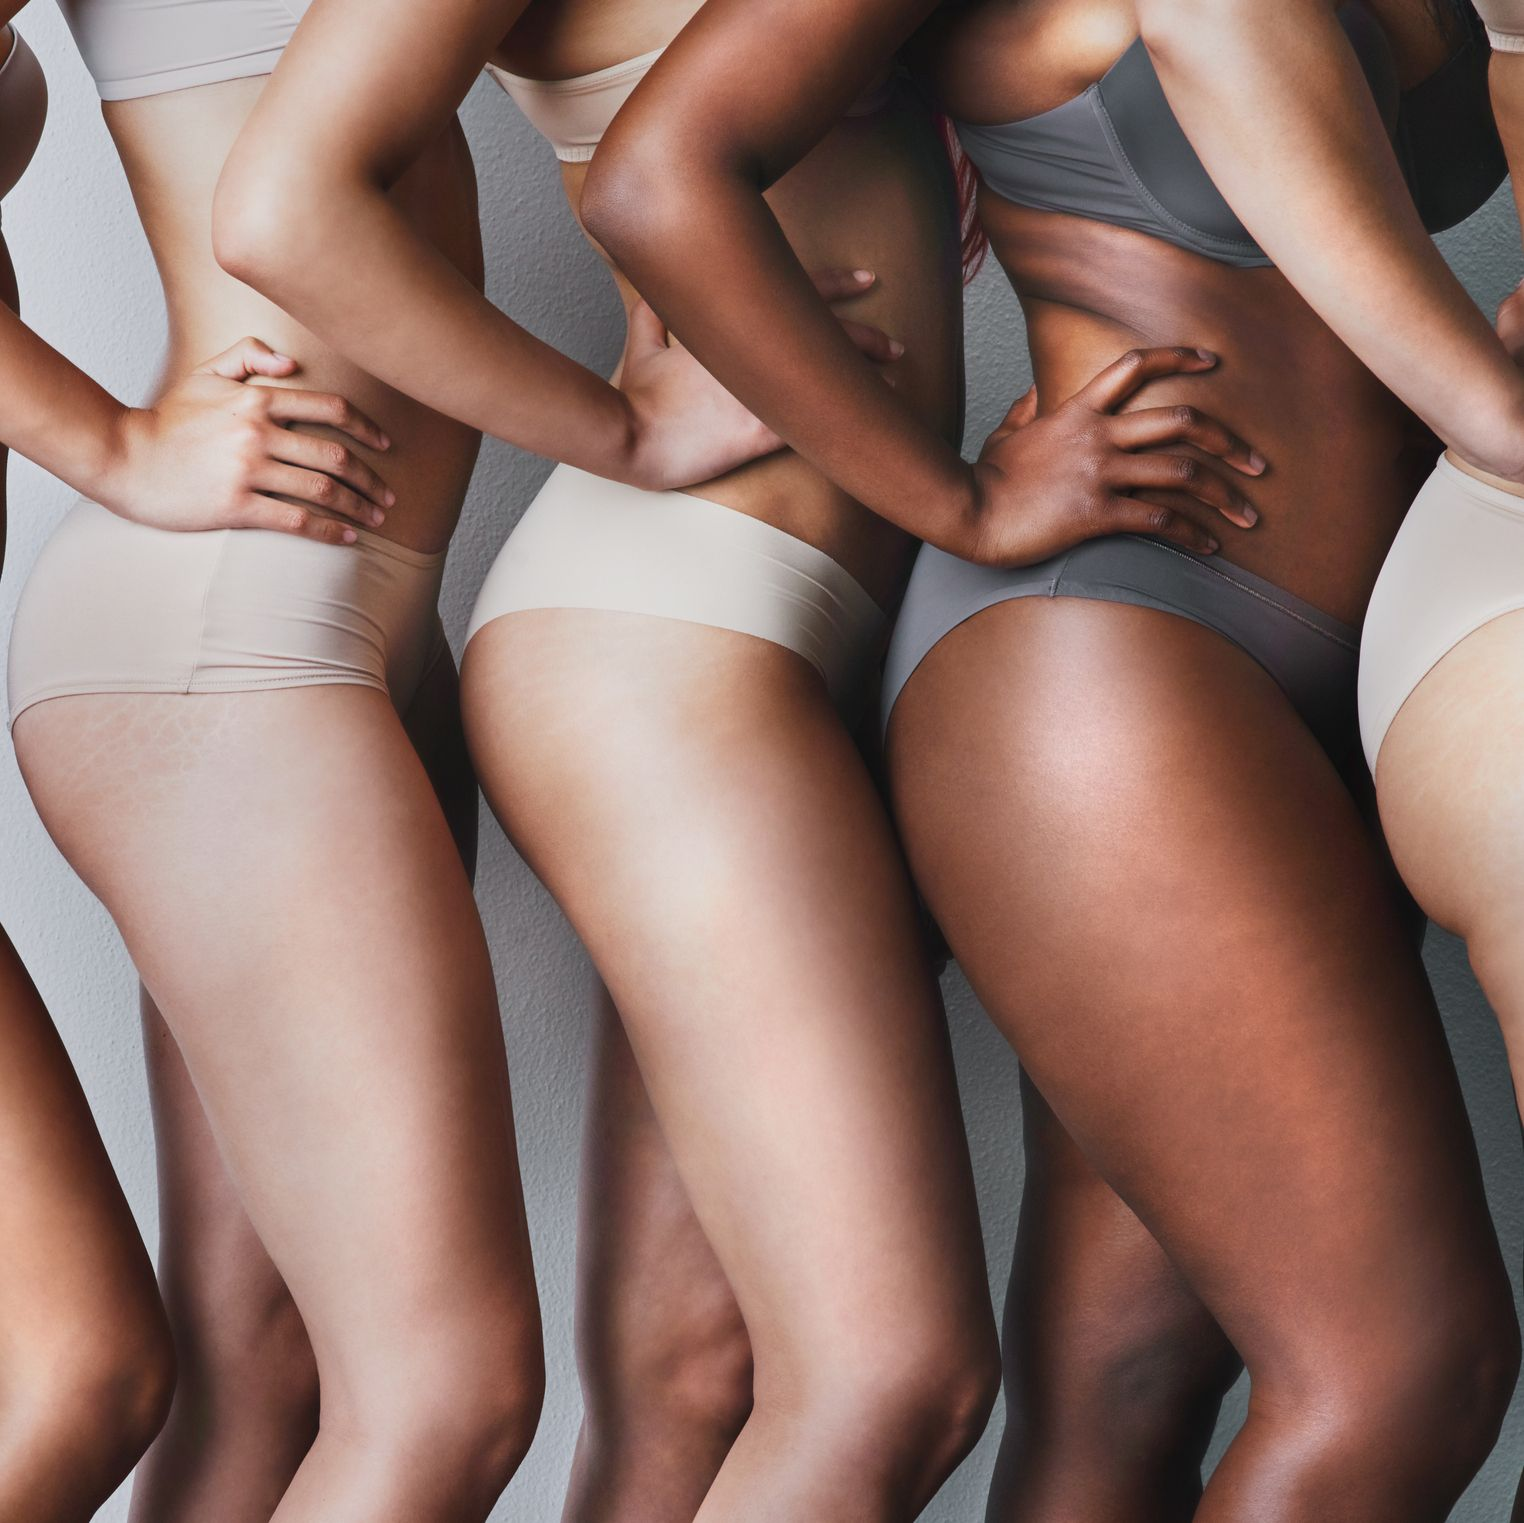 Is It Possible to Get Rid of Cellulite? Here's What Dermatologists Say